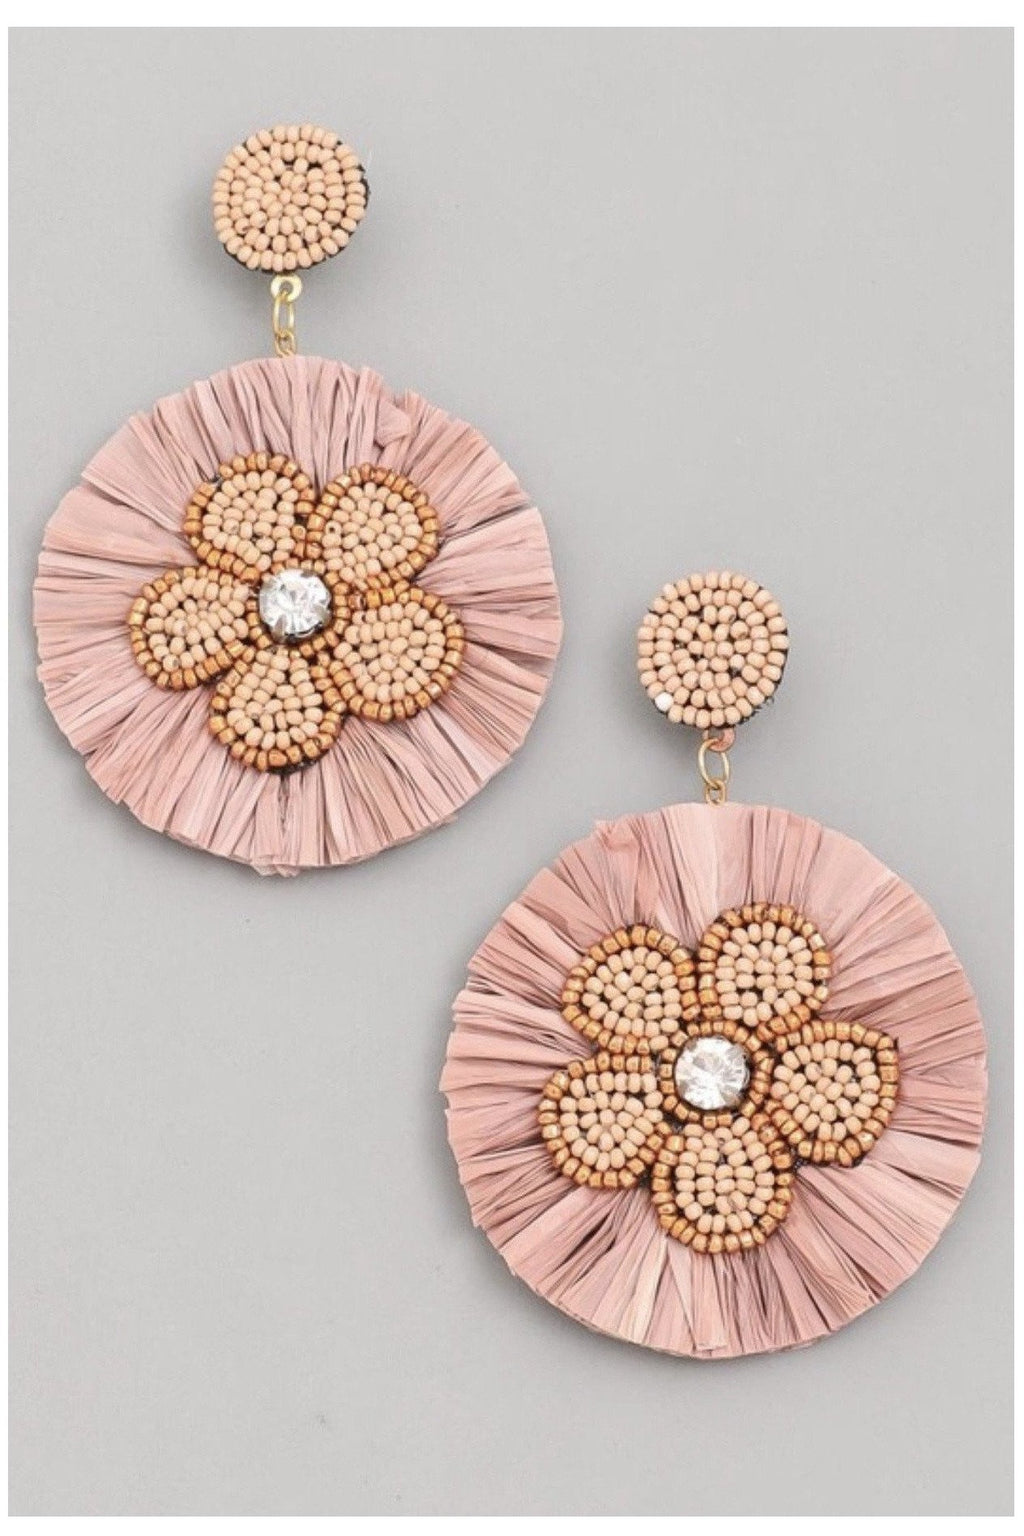 Georgia Peach Earrings - Indigo Closet